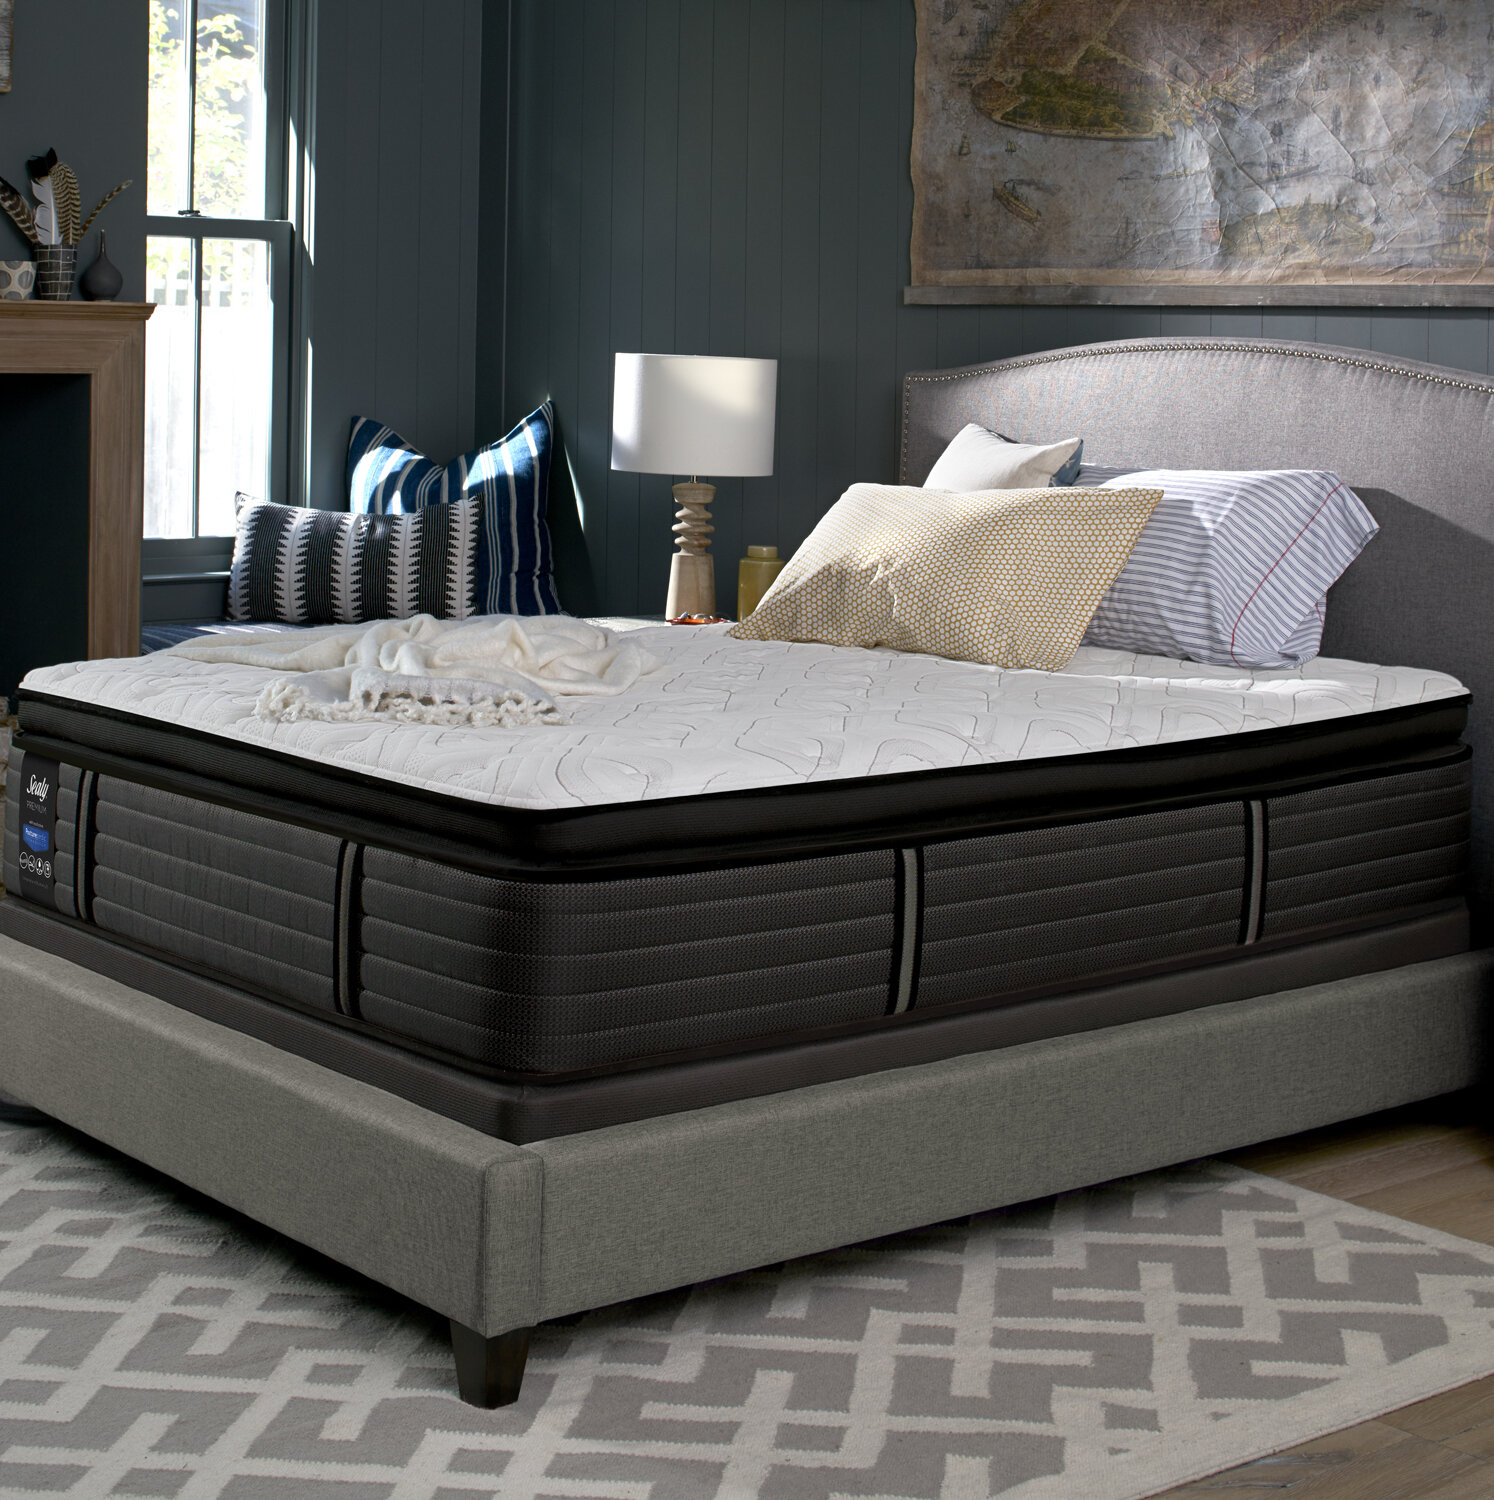 topper now mattress a pillow divan beds from deluxe only top bed online buy utopia